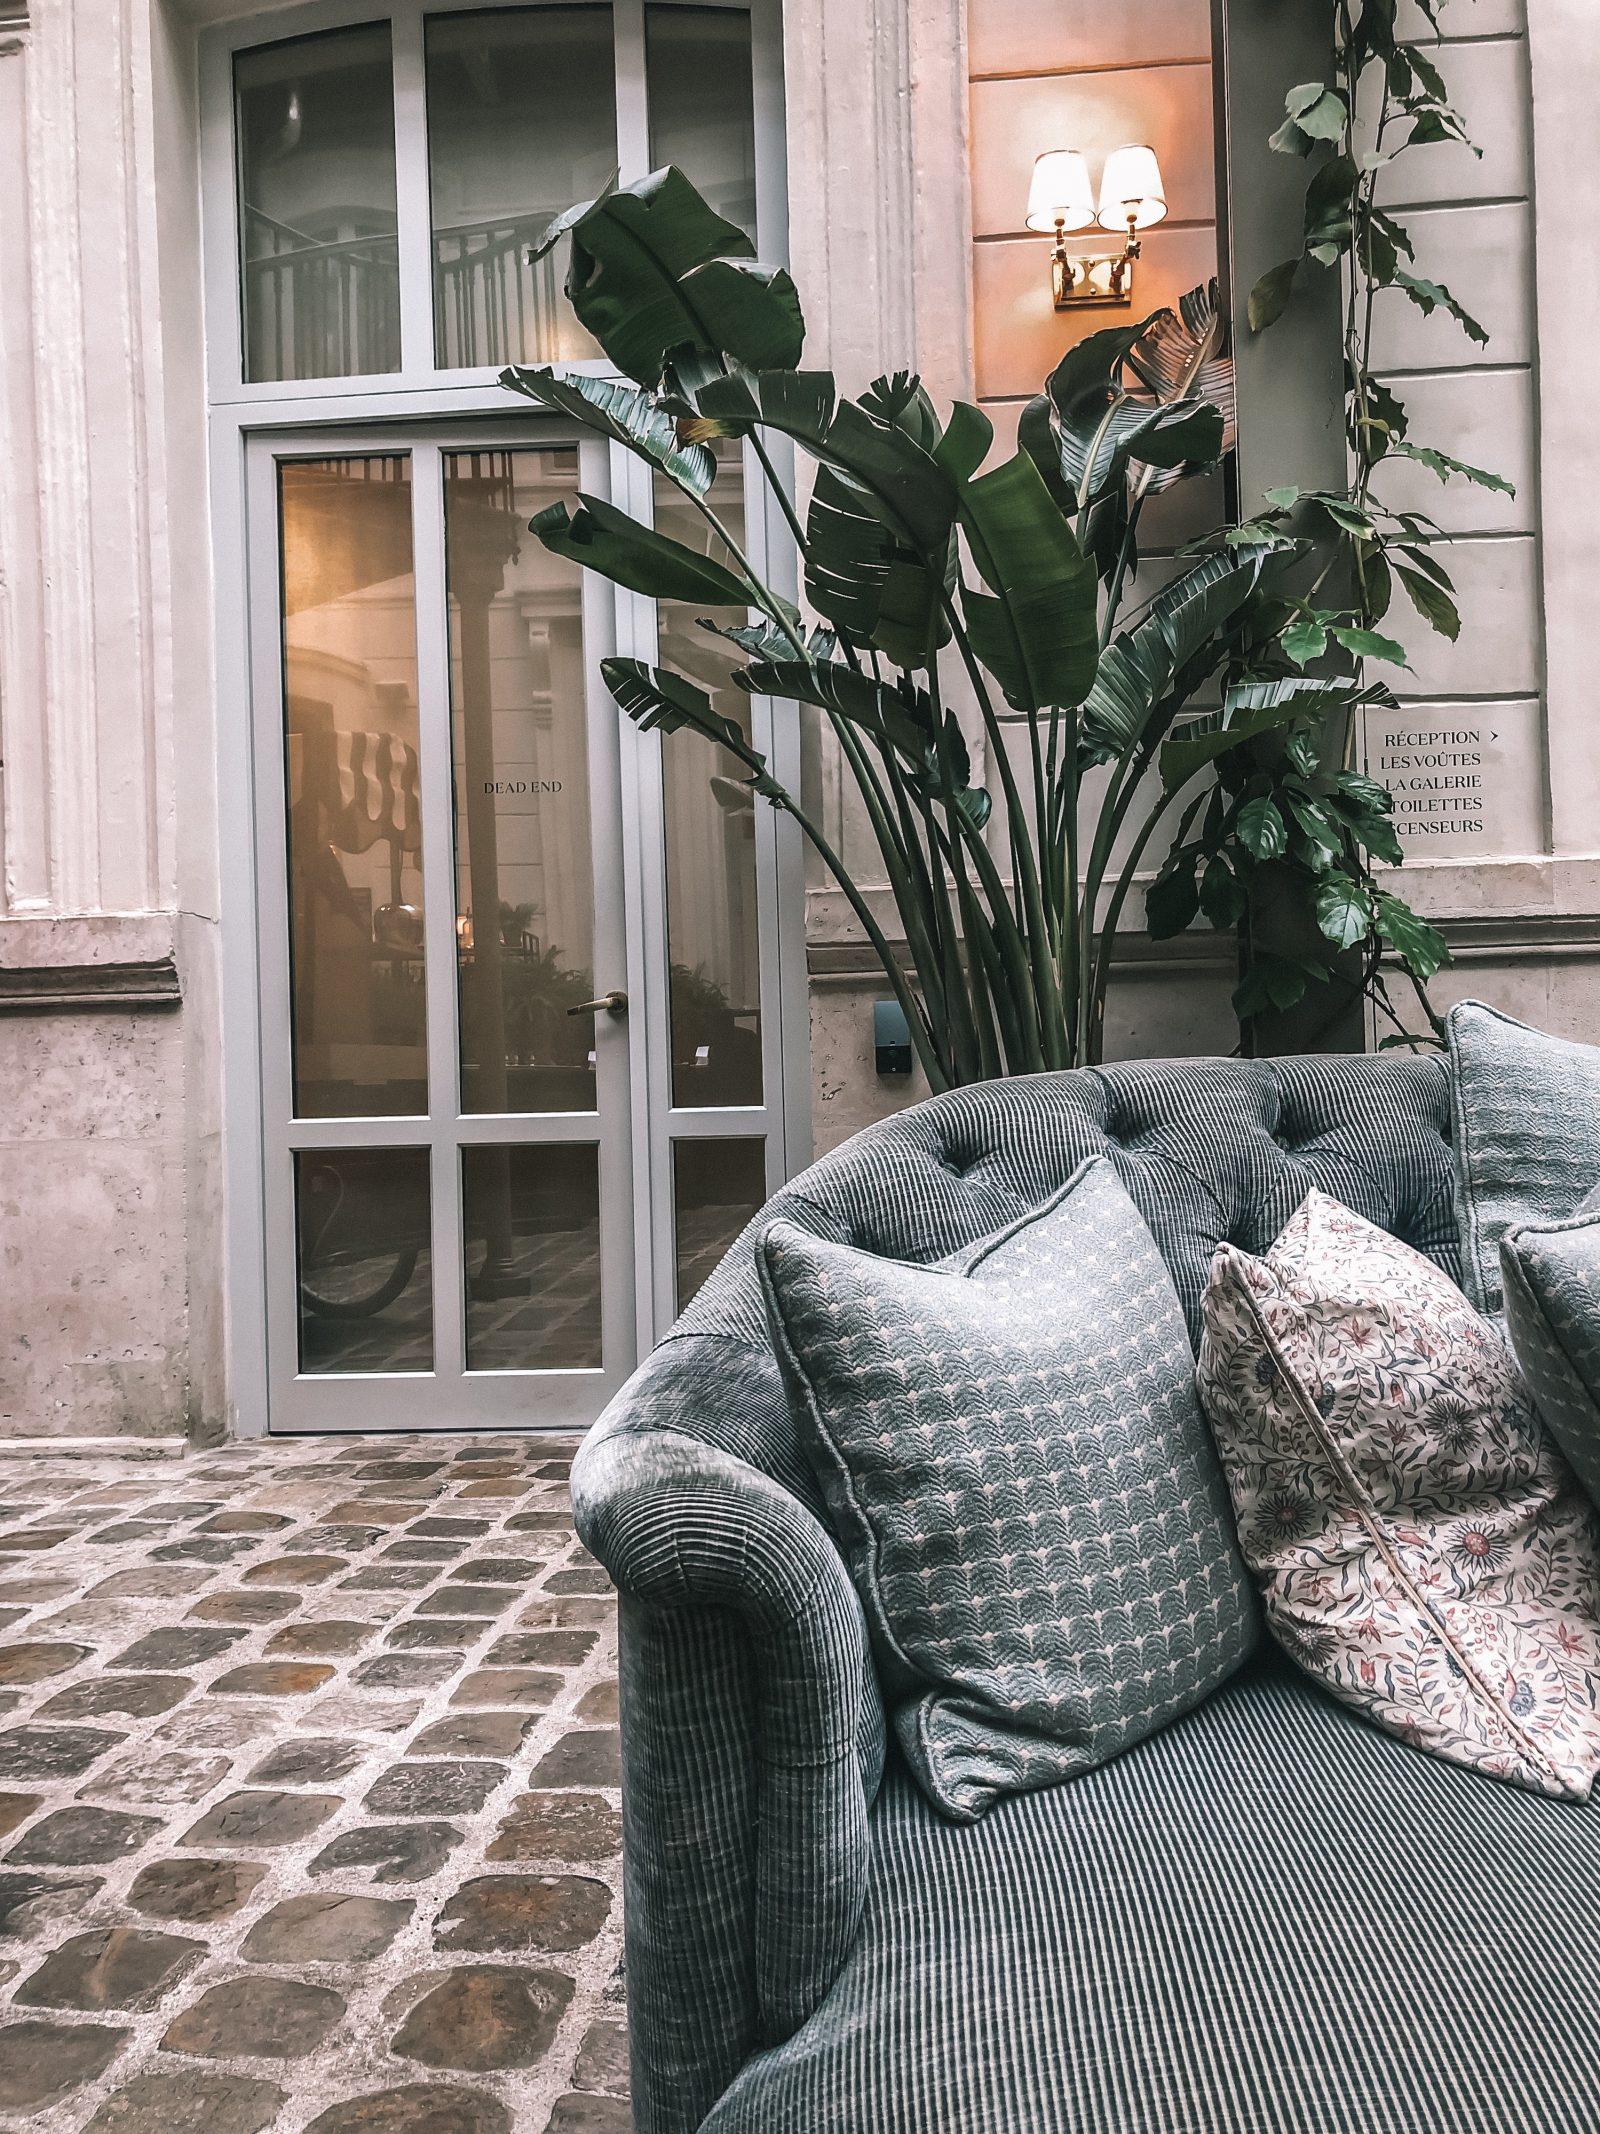 Paris City Guide - The Hoxton Hotel